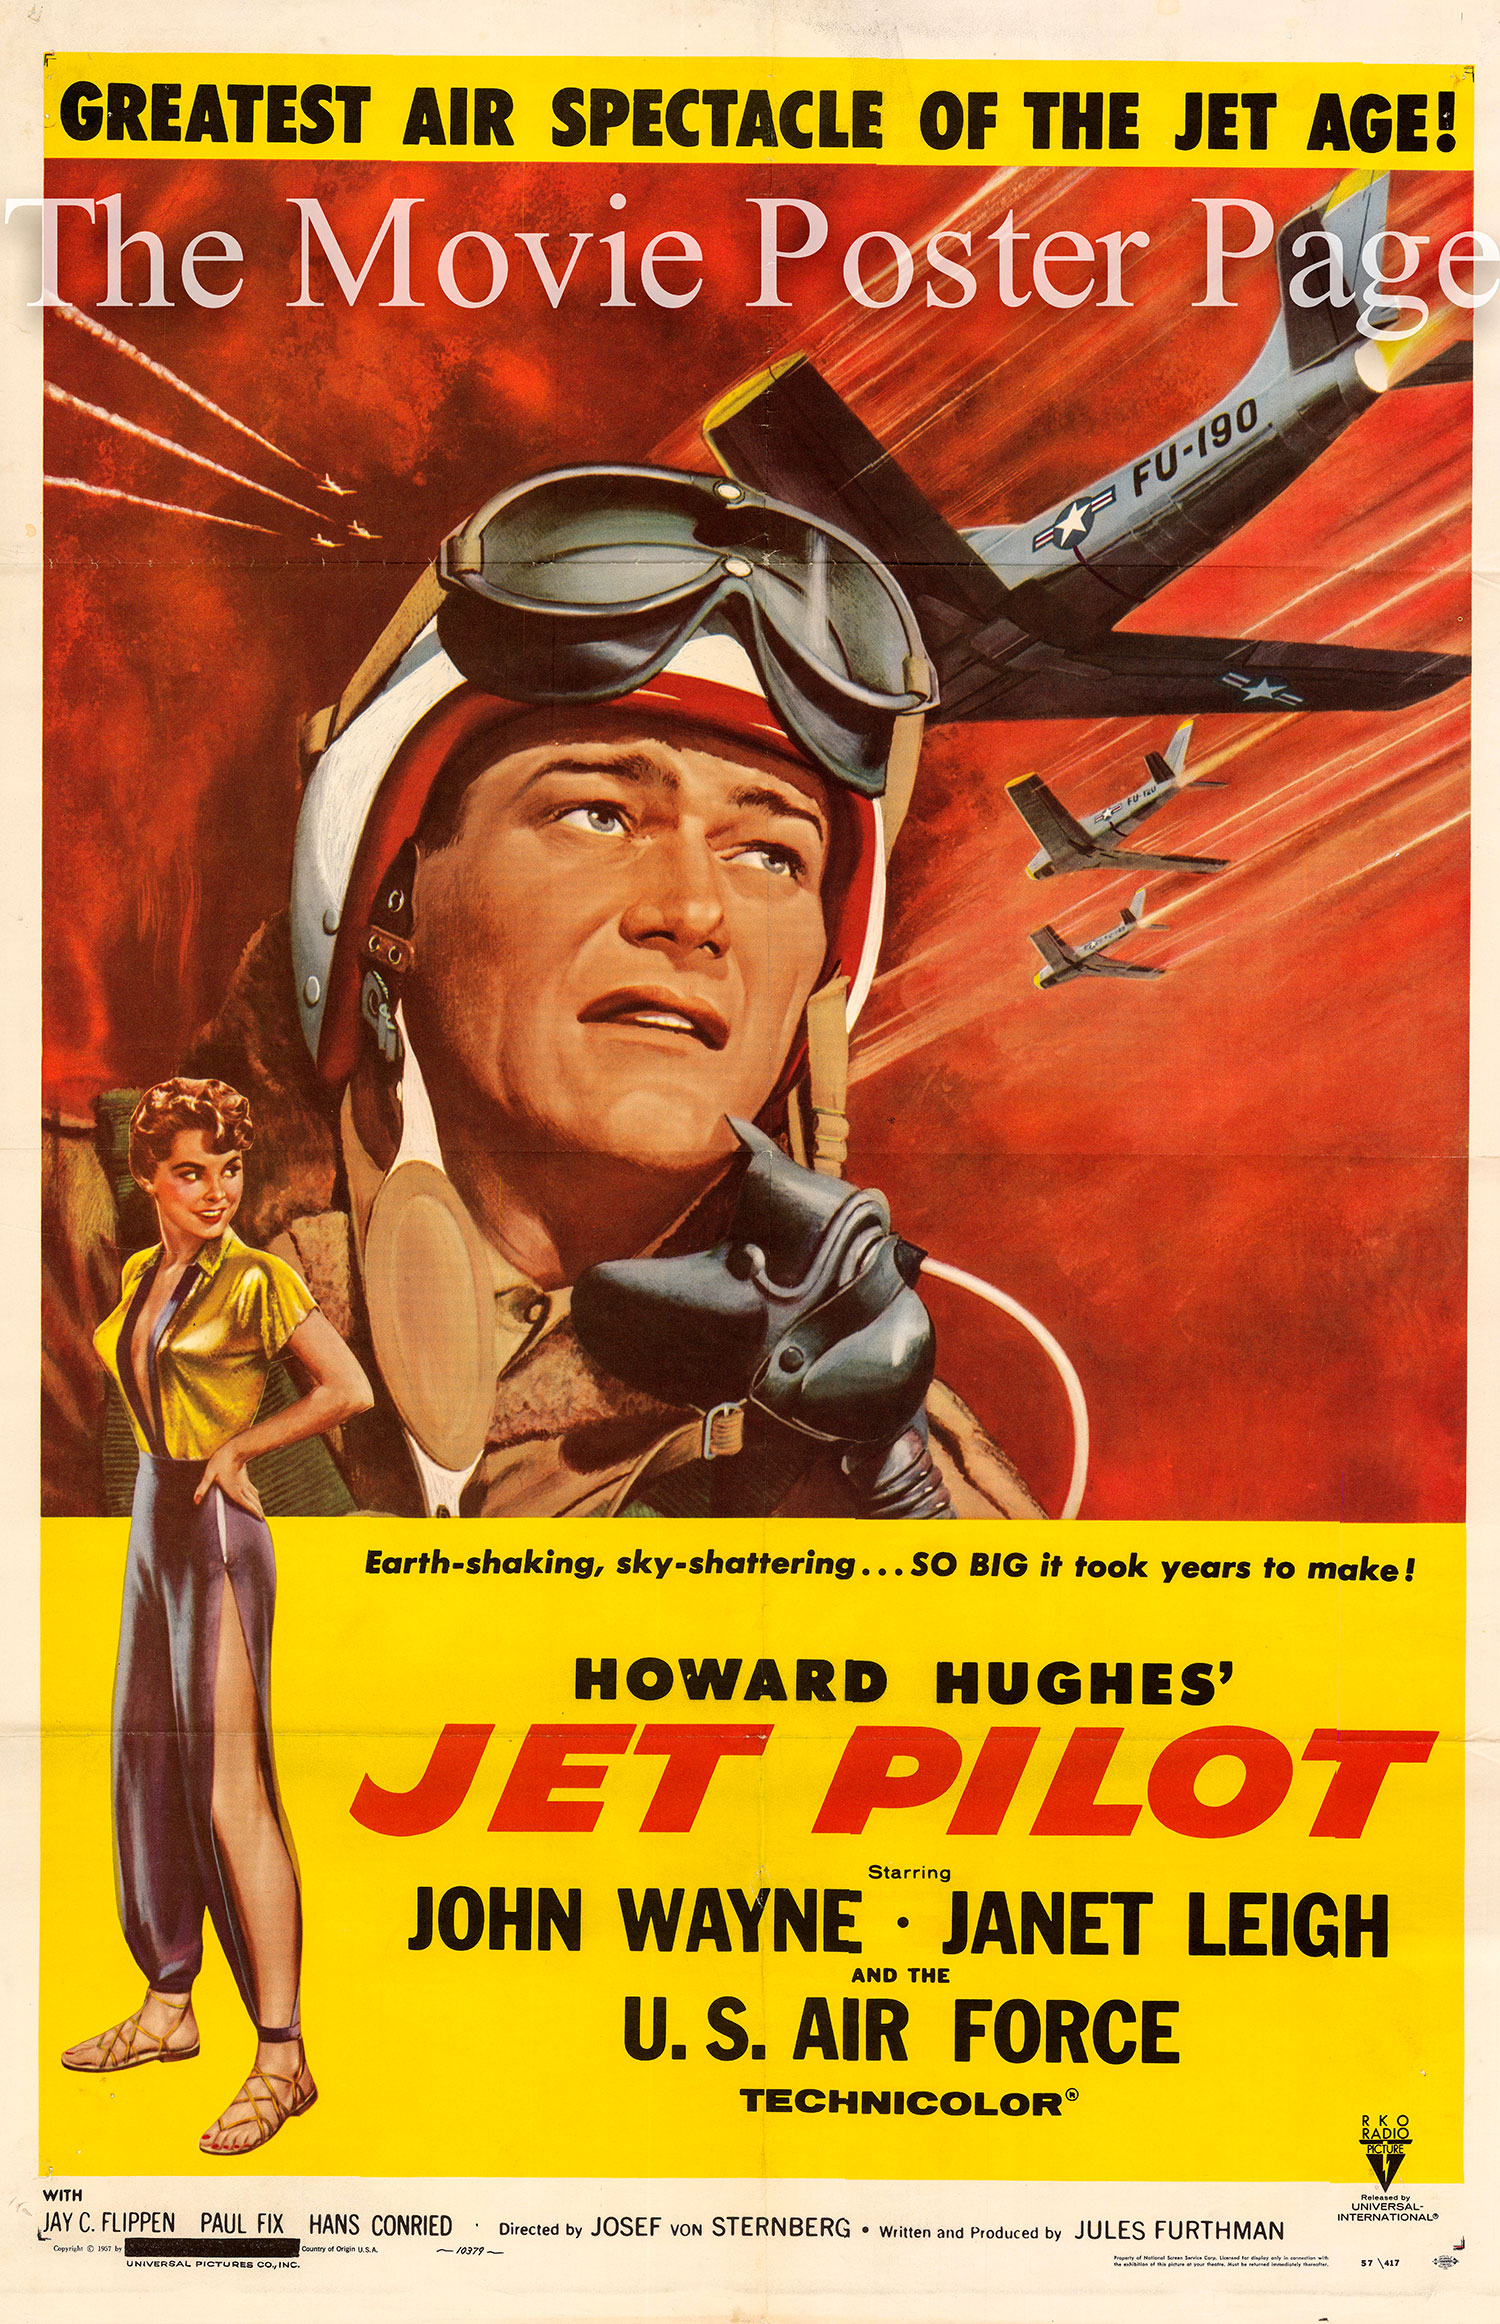 Pictured is a US one-sheet promotional poster for the 1957 Josef von Sternberg film Jet Pilot starring John Wayne and Janet Leigh.